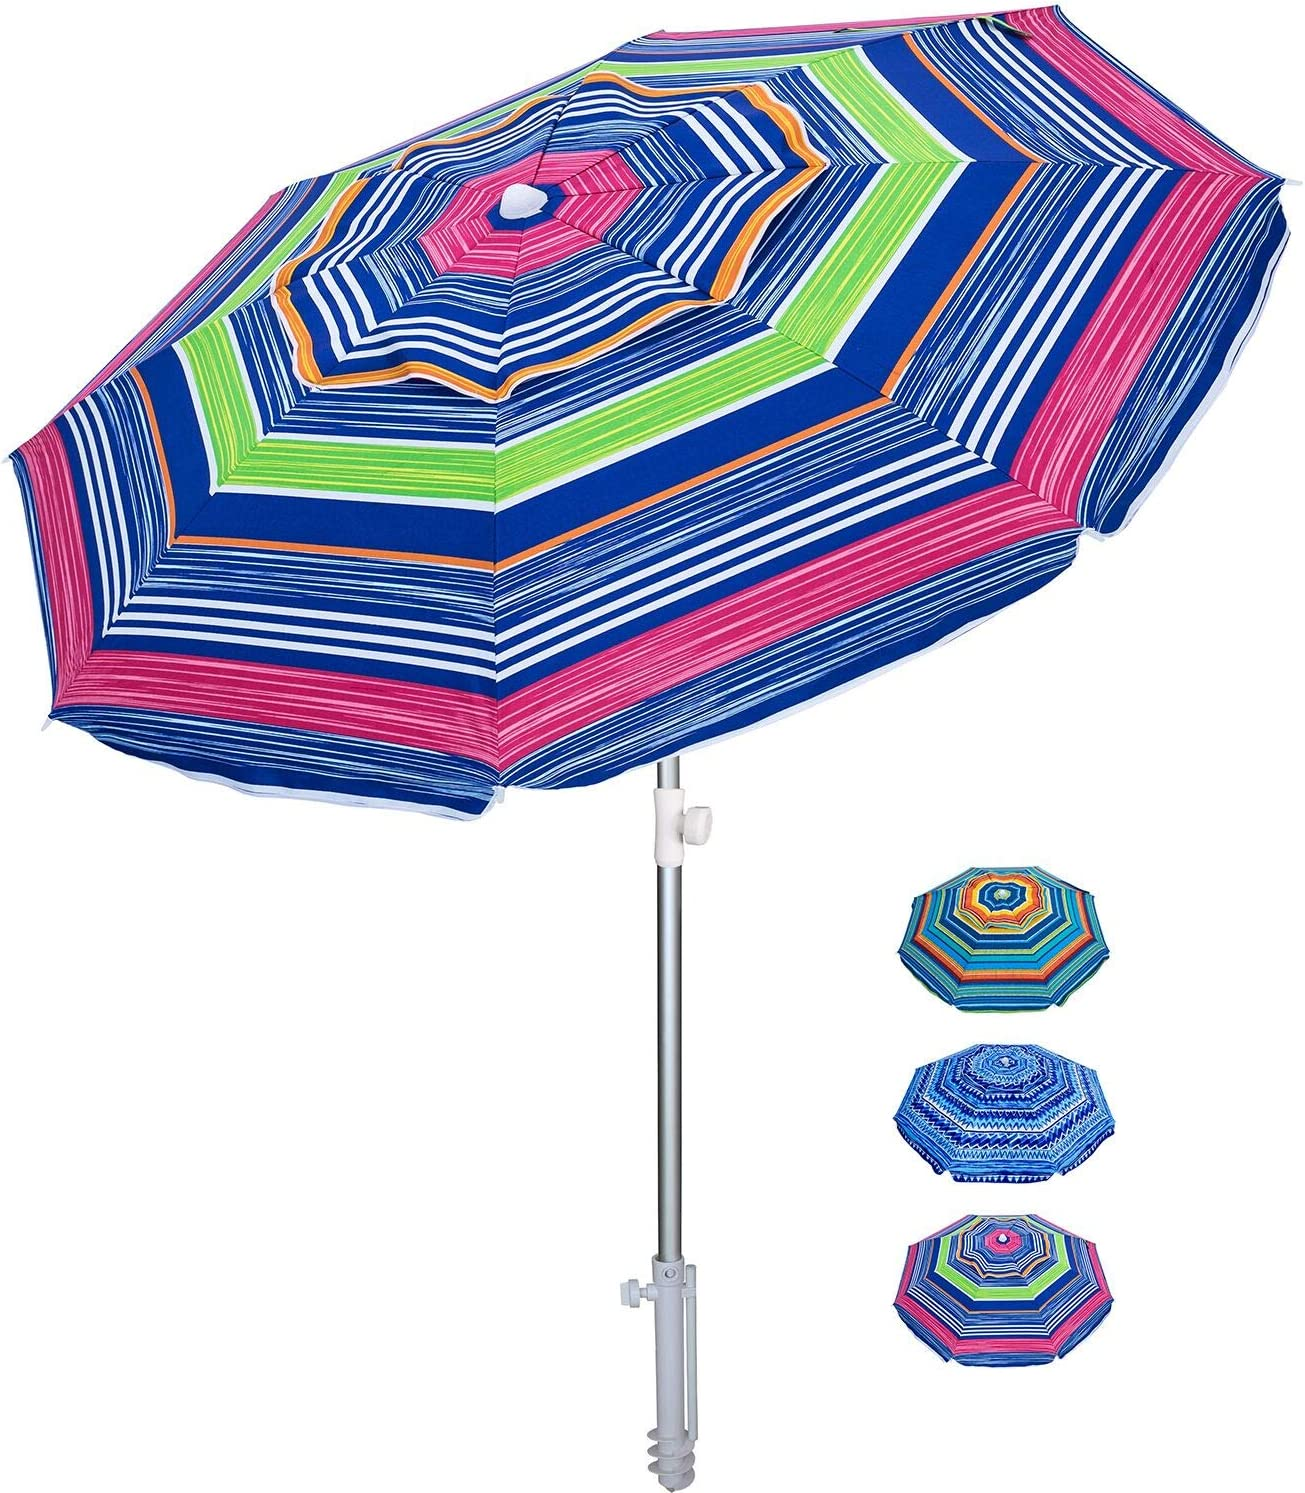 AMMSUN Beach Umbrella 6.5ft Umbrella with Sand Anchor & Tilt Aluminum Pole, UV 50+ Portable Beach Umbrella with Carry Bag for Beach Patio Garden Outdoor (Green Stripe)